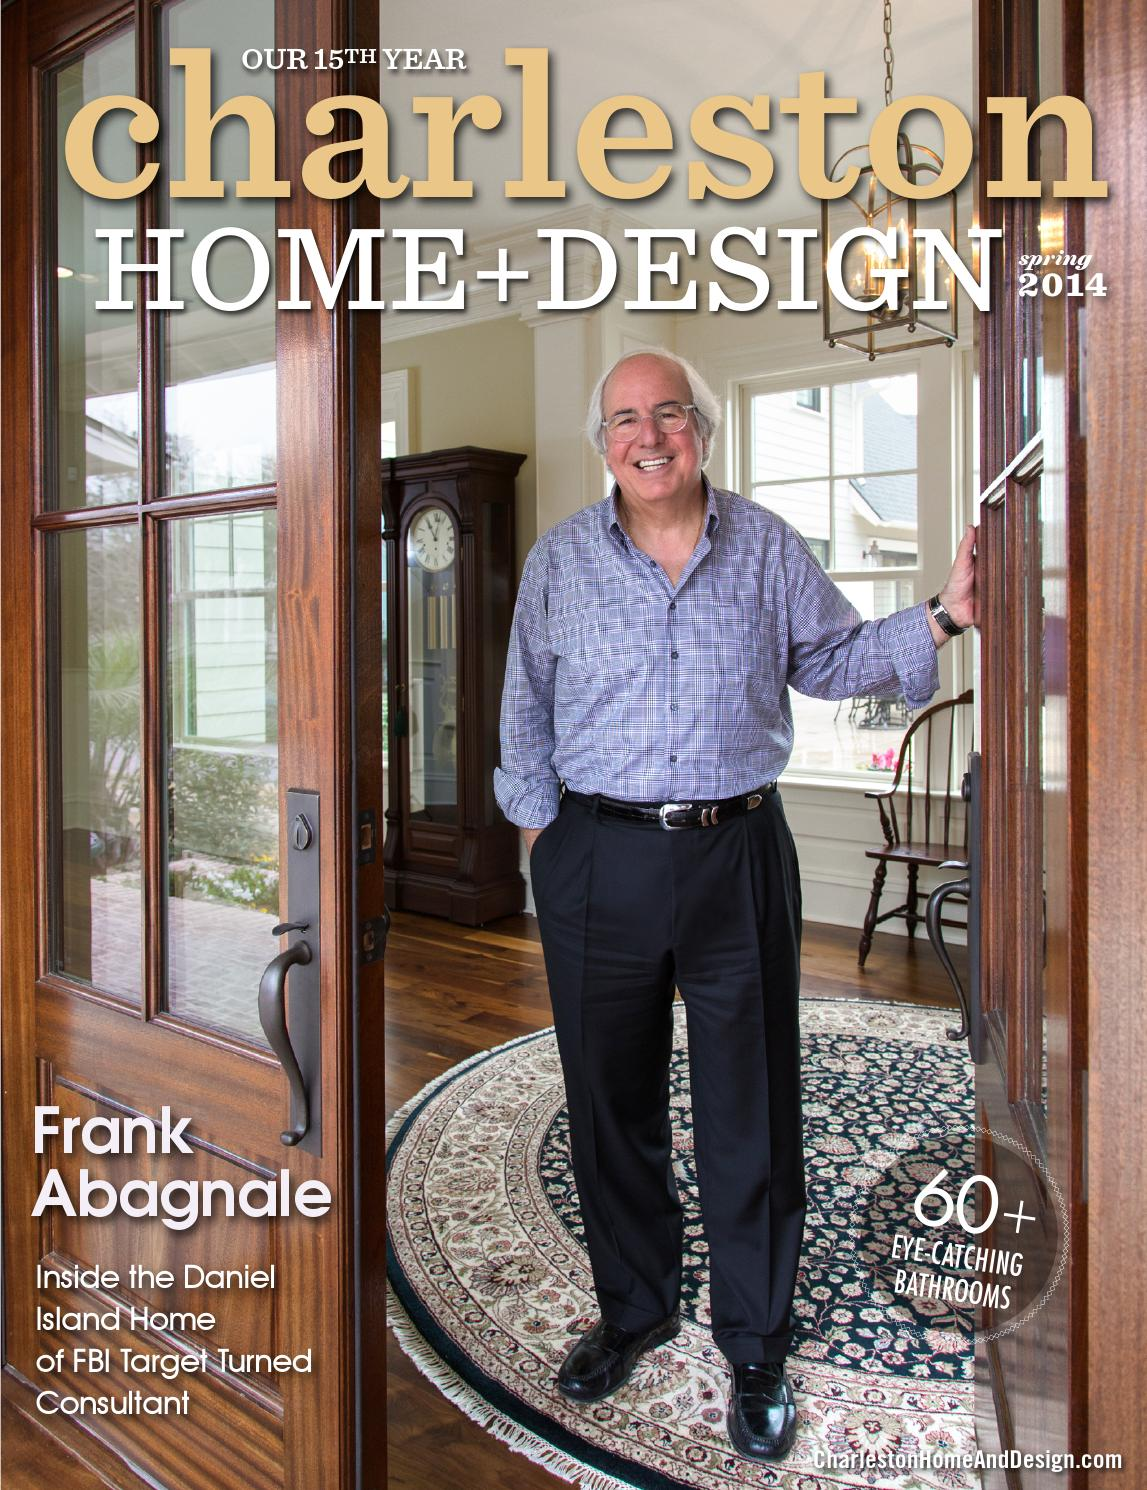 Combine Lit Bureau Junior Charleston Home Design Magazine Spring 2014